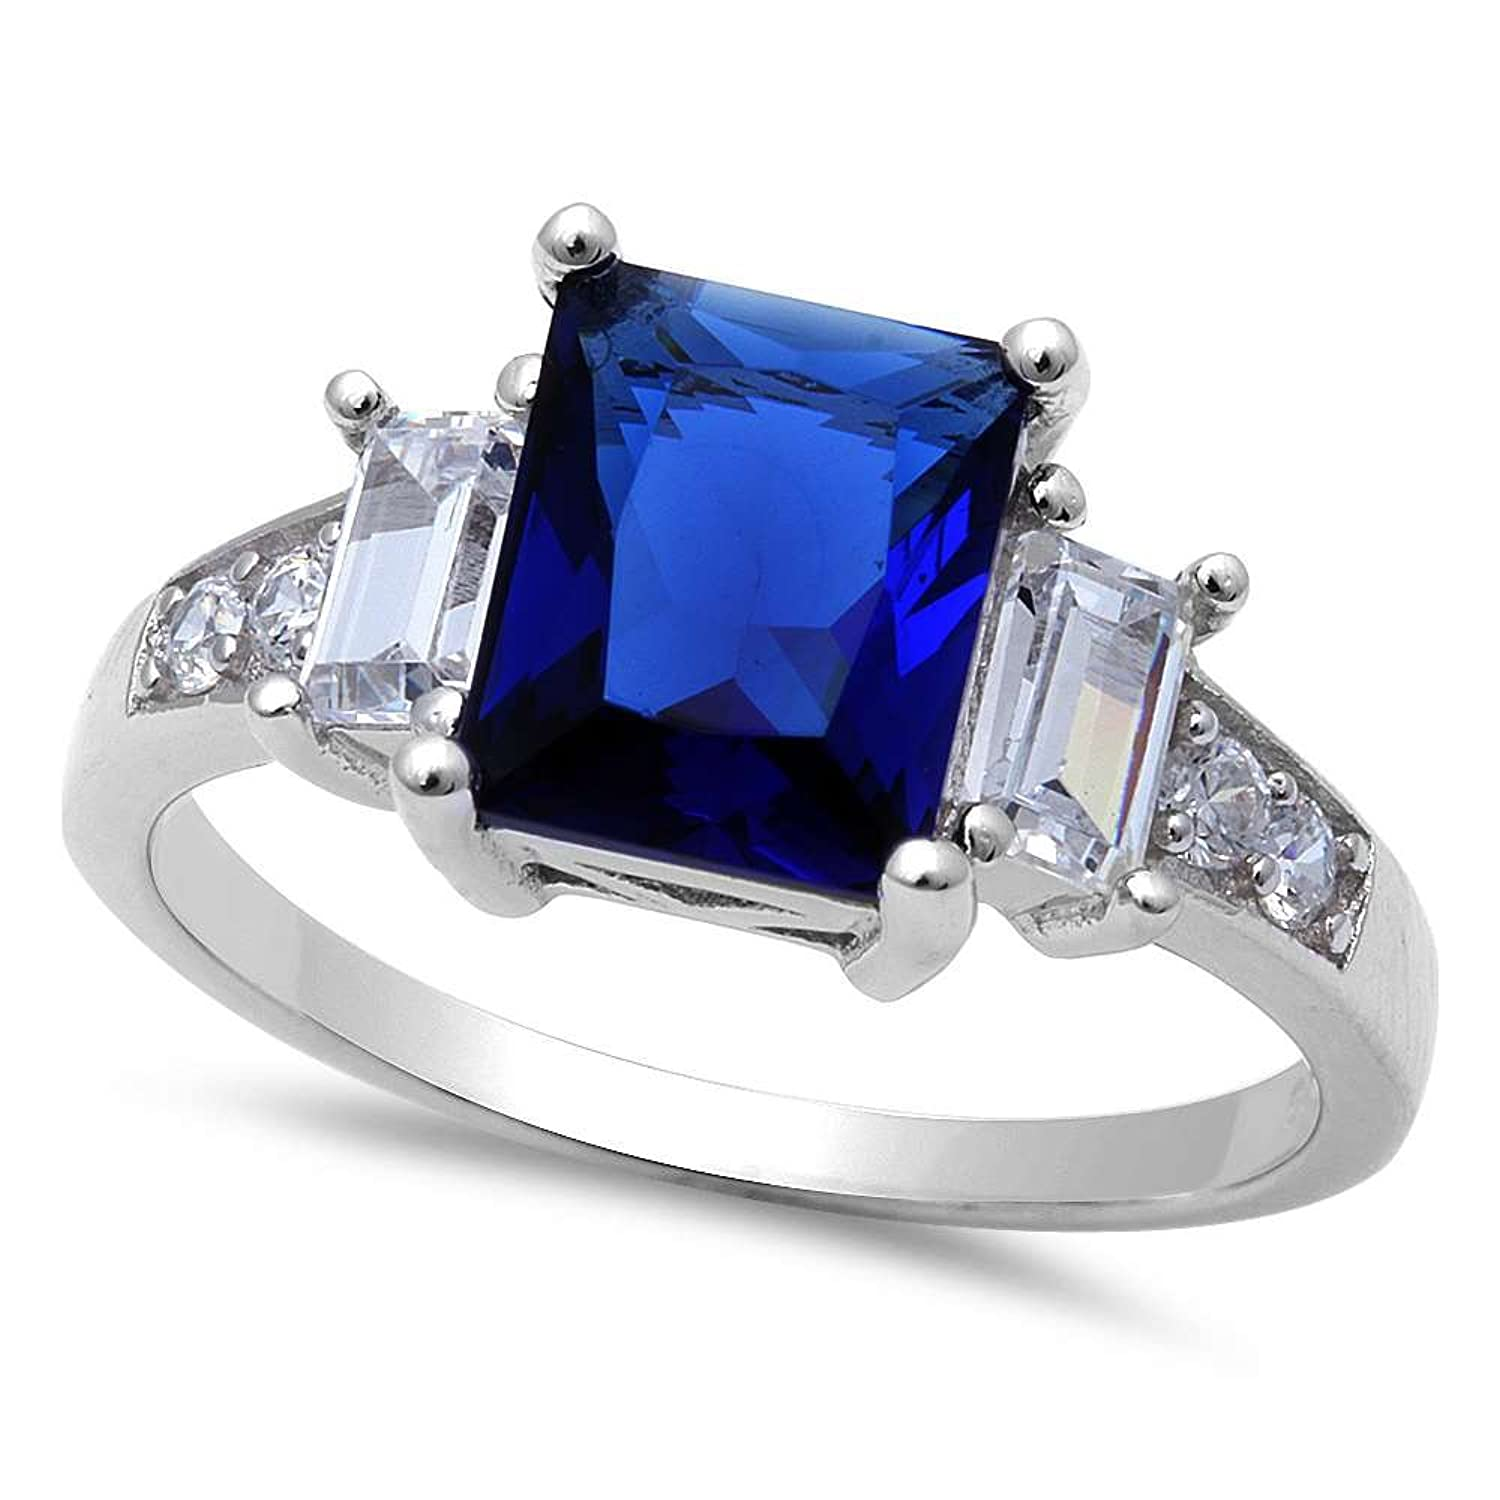 rings products water clear dark yg engagement ring casey melanie aquamarine blue sapphire